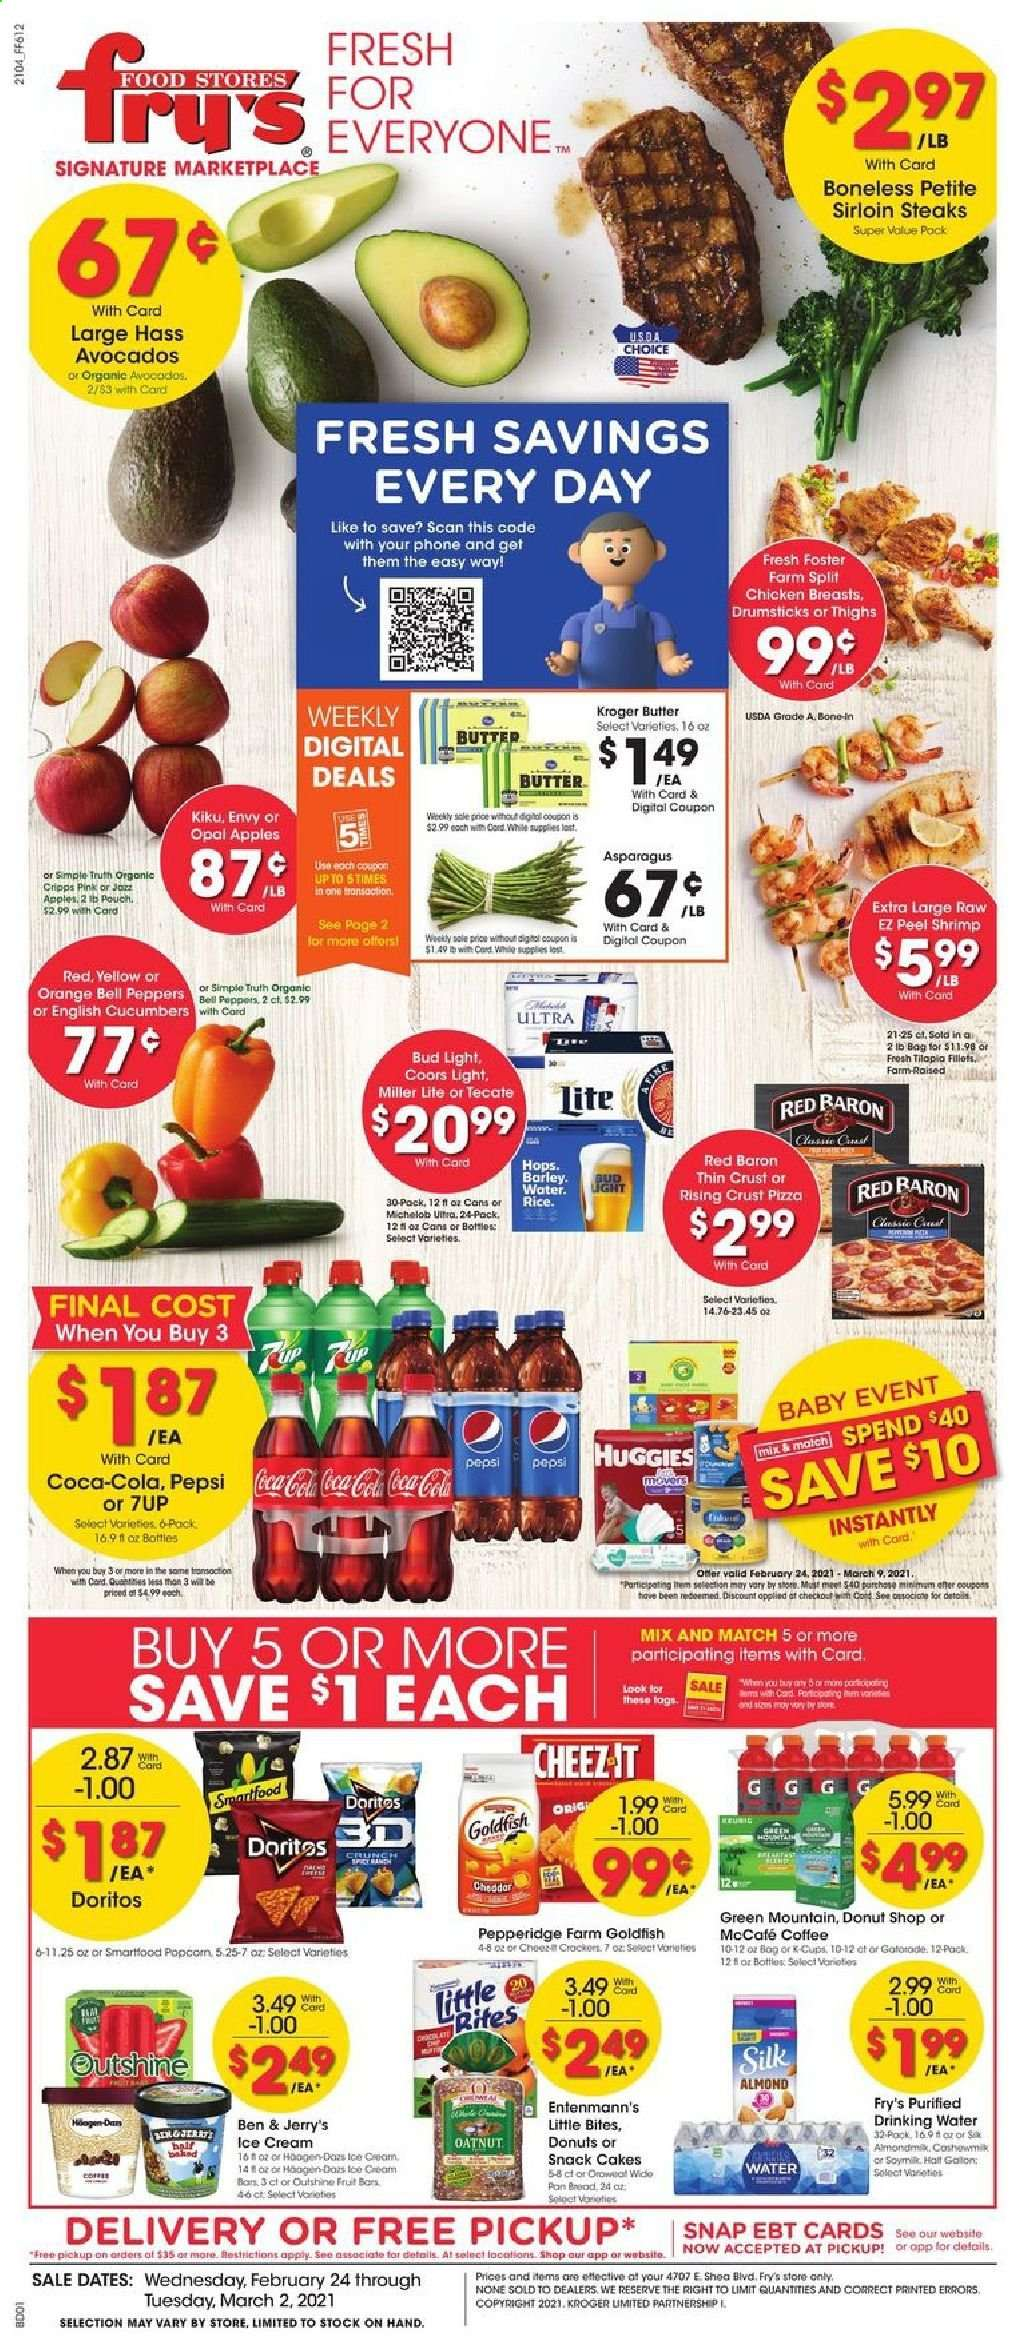 Fry's Flyer - 02.24.2021 - 03.02.2021 - Sales products - bread, cake, Entenmann's, Little Bites, apples, orange, shrimps, pizza, cheddar, soy milk, Silk, butter, ice cream, Ben & Jerry's, bell peppers, Red Baron, Doritos, snack, Smartfood, Goldfish, cucumbers, Coca-Cola, Pepsi, 7UP, coffee, coffee capsules, McCafe, K-Cups, Green Mountain, beer, Miller Lite, Coors, Michelob, Bud Light, chicken, chicken breasts, steak, sirloin steak, Huggies, pan, water. Page 1.